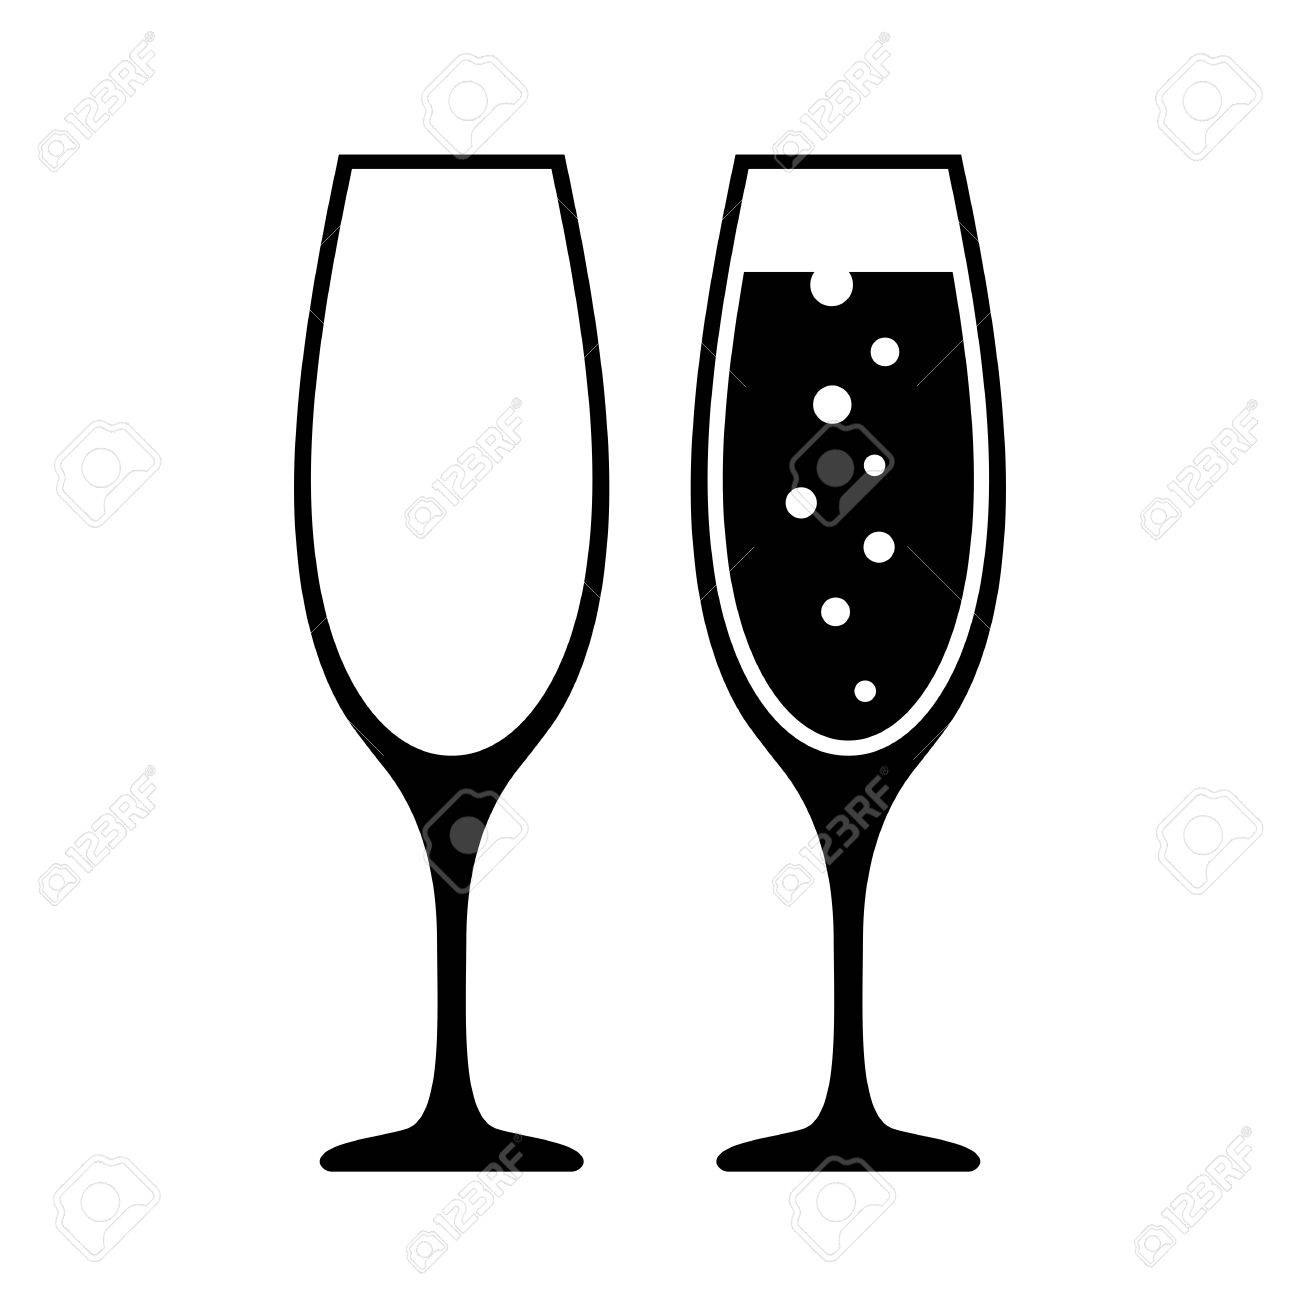 champagne glass icon royalty free cliparts vectors and stock rh 123rf com grass vector free glass victorian dolls